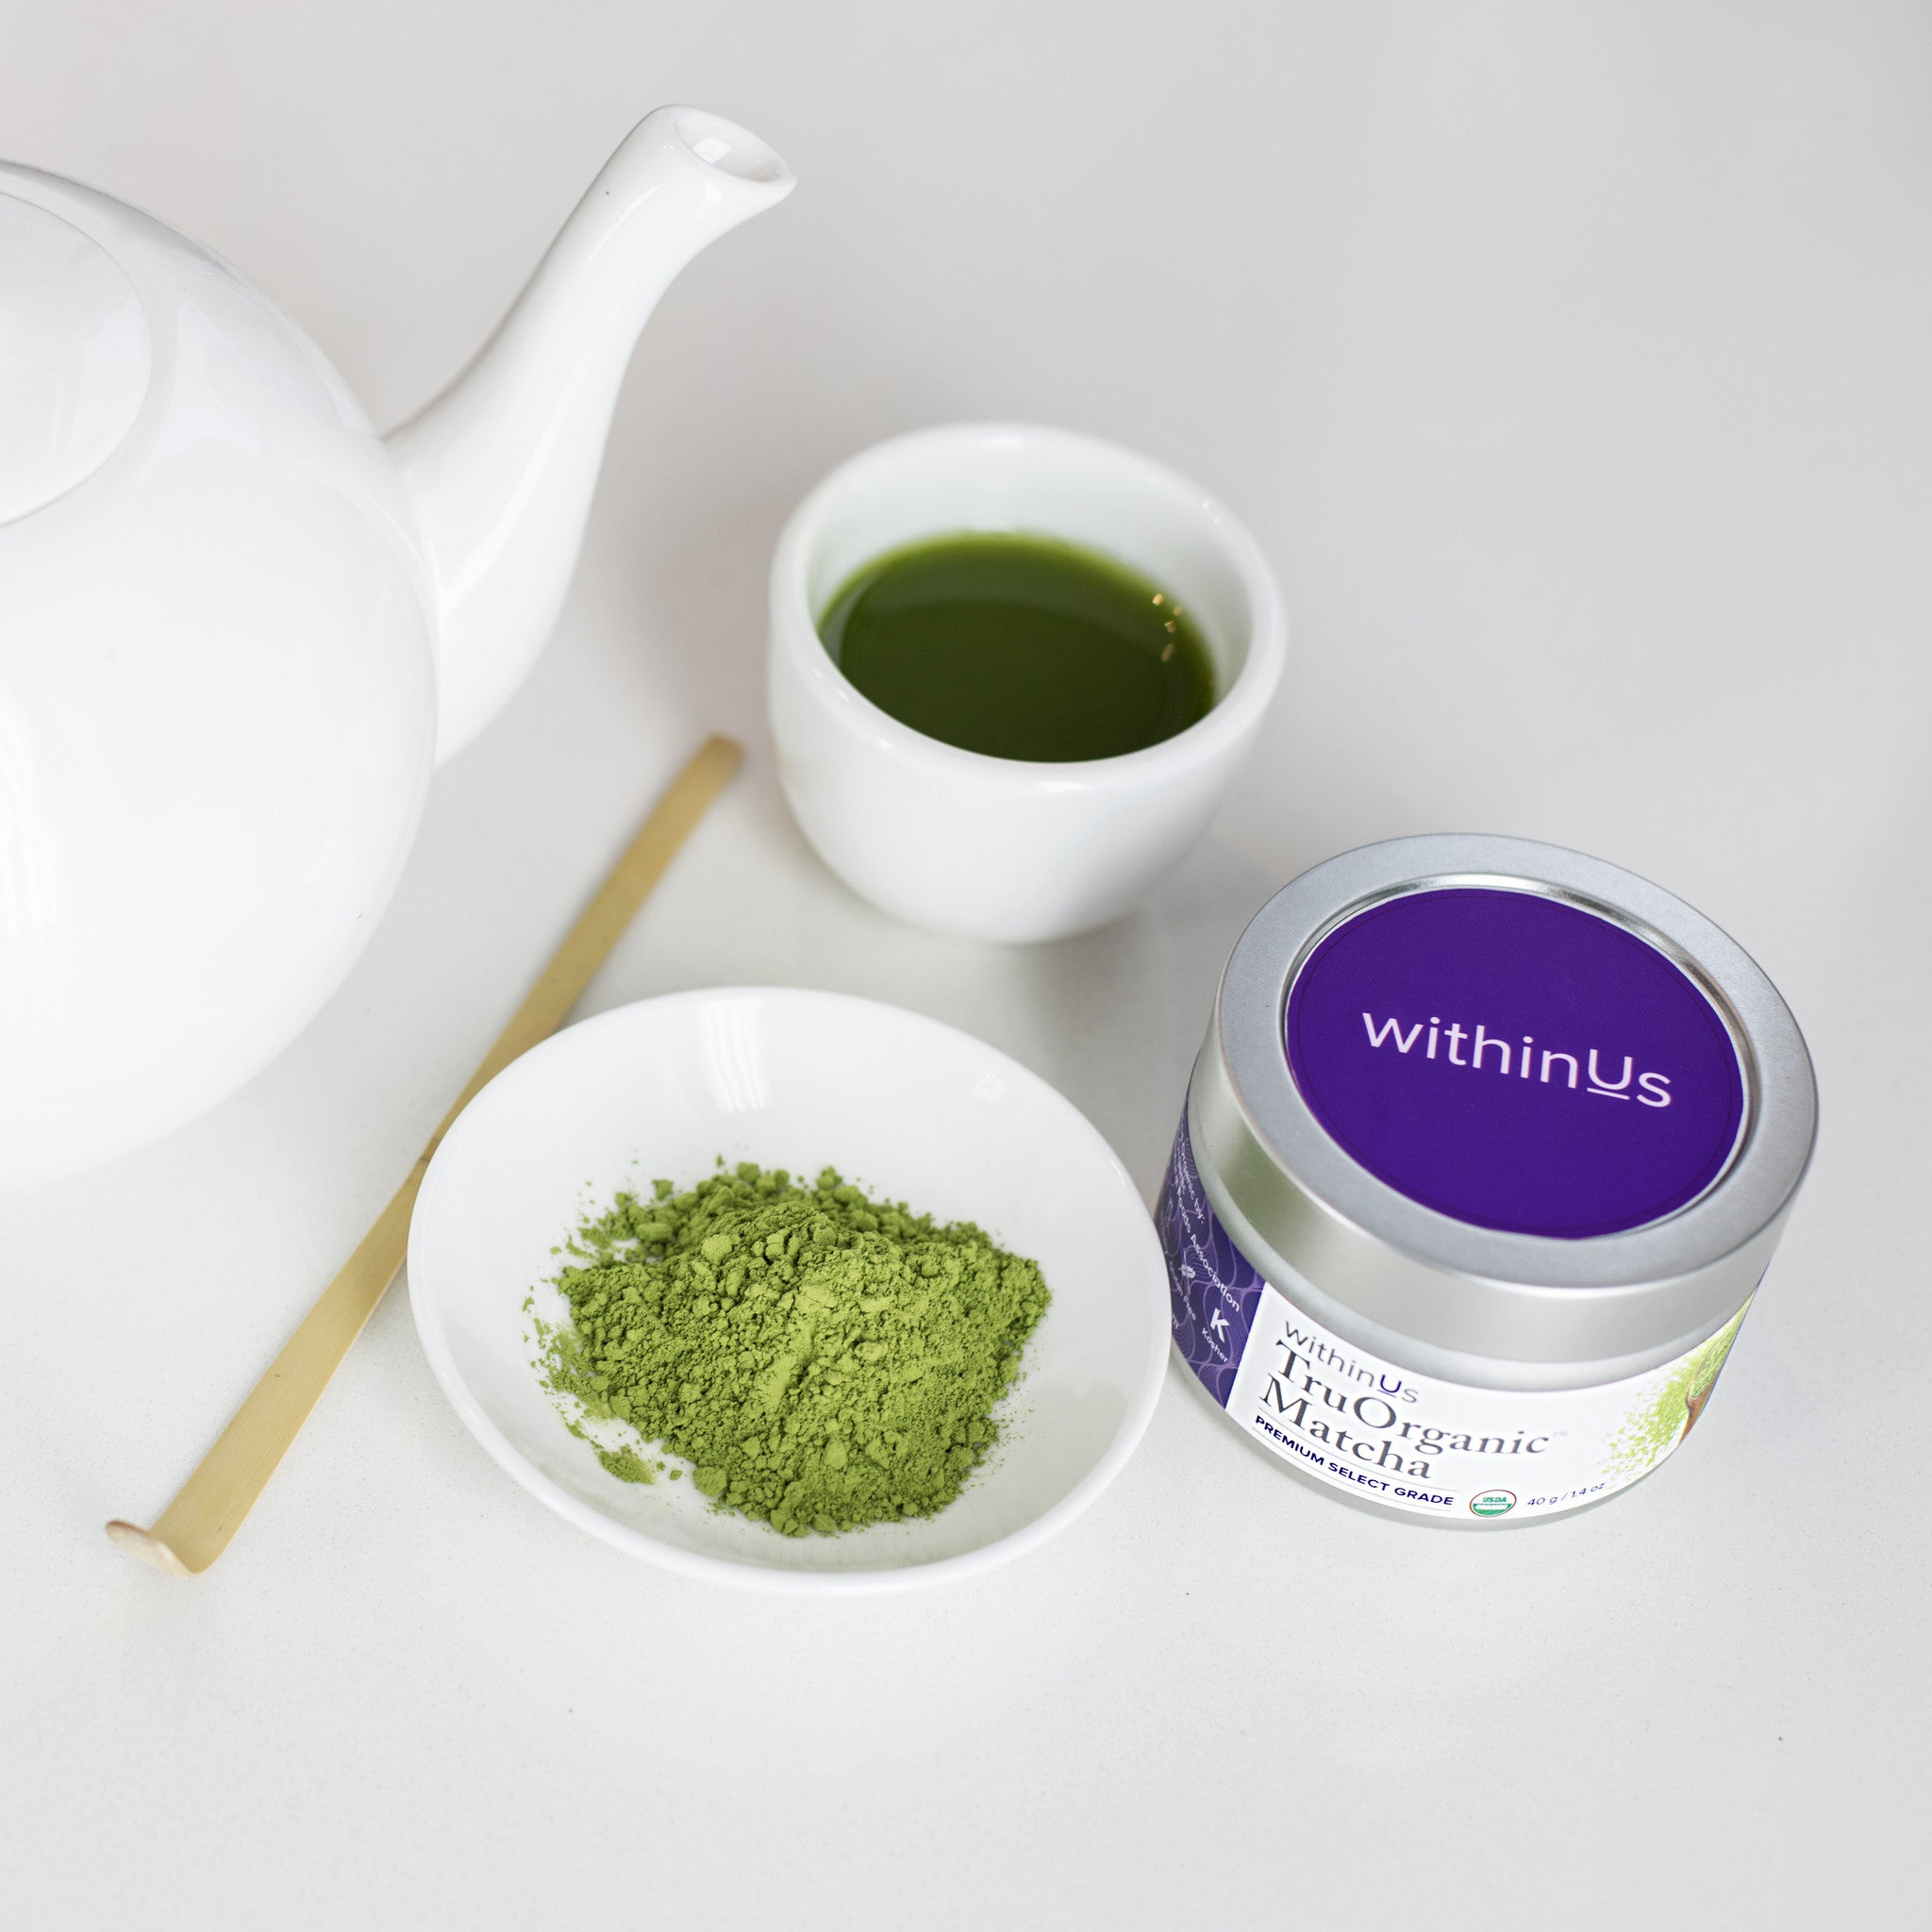 INTRODUCING WITHINUS TRUORGANIC™ MATCHA ~ withinUs Team